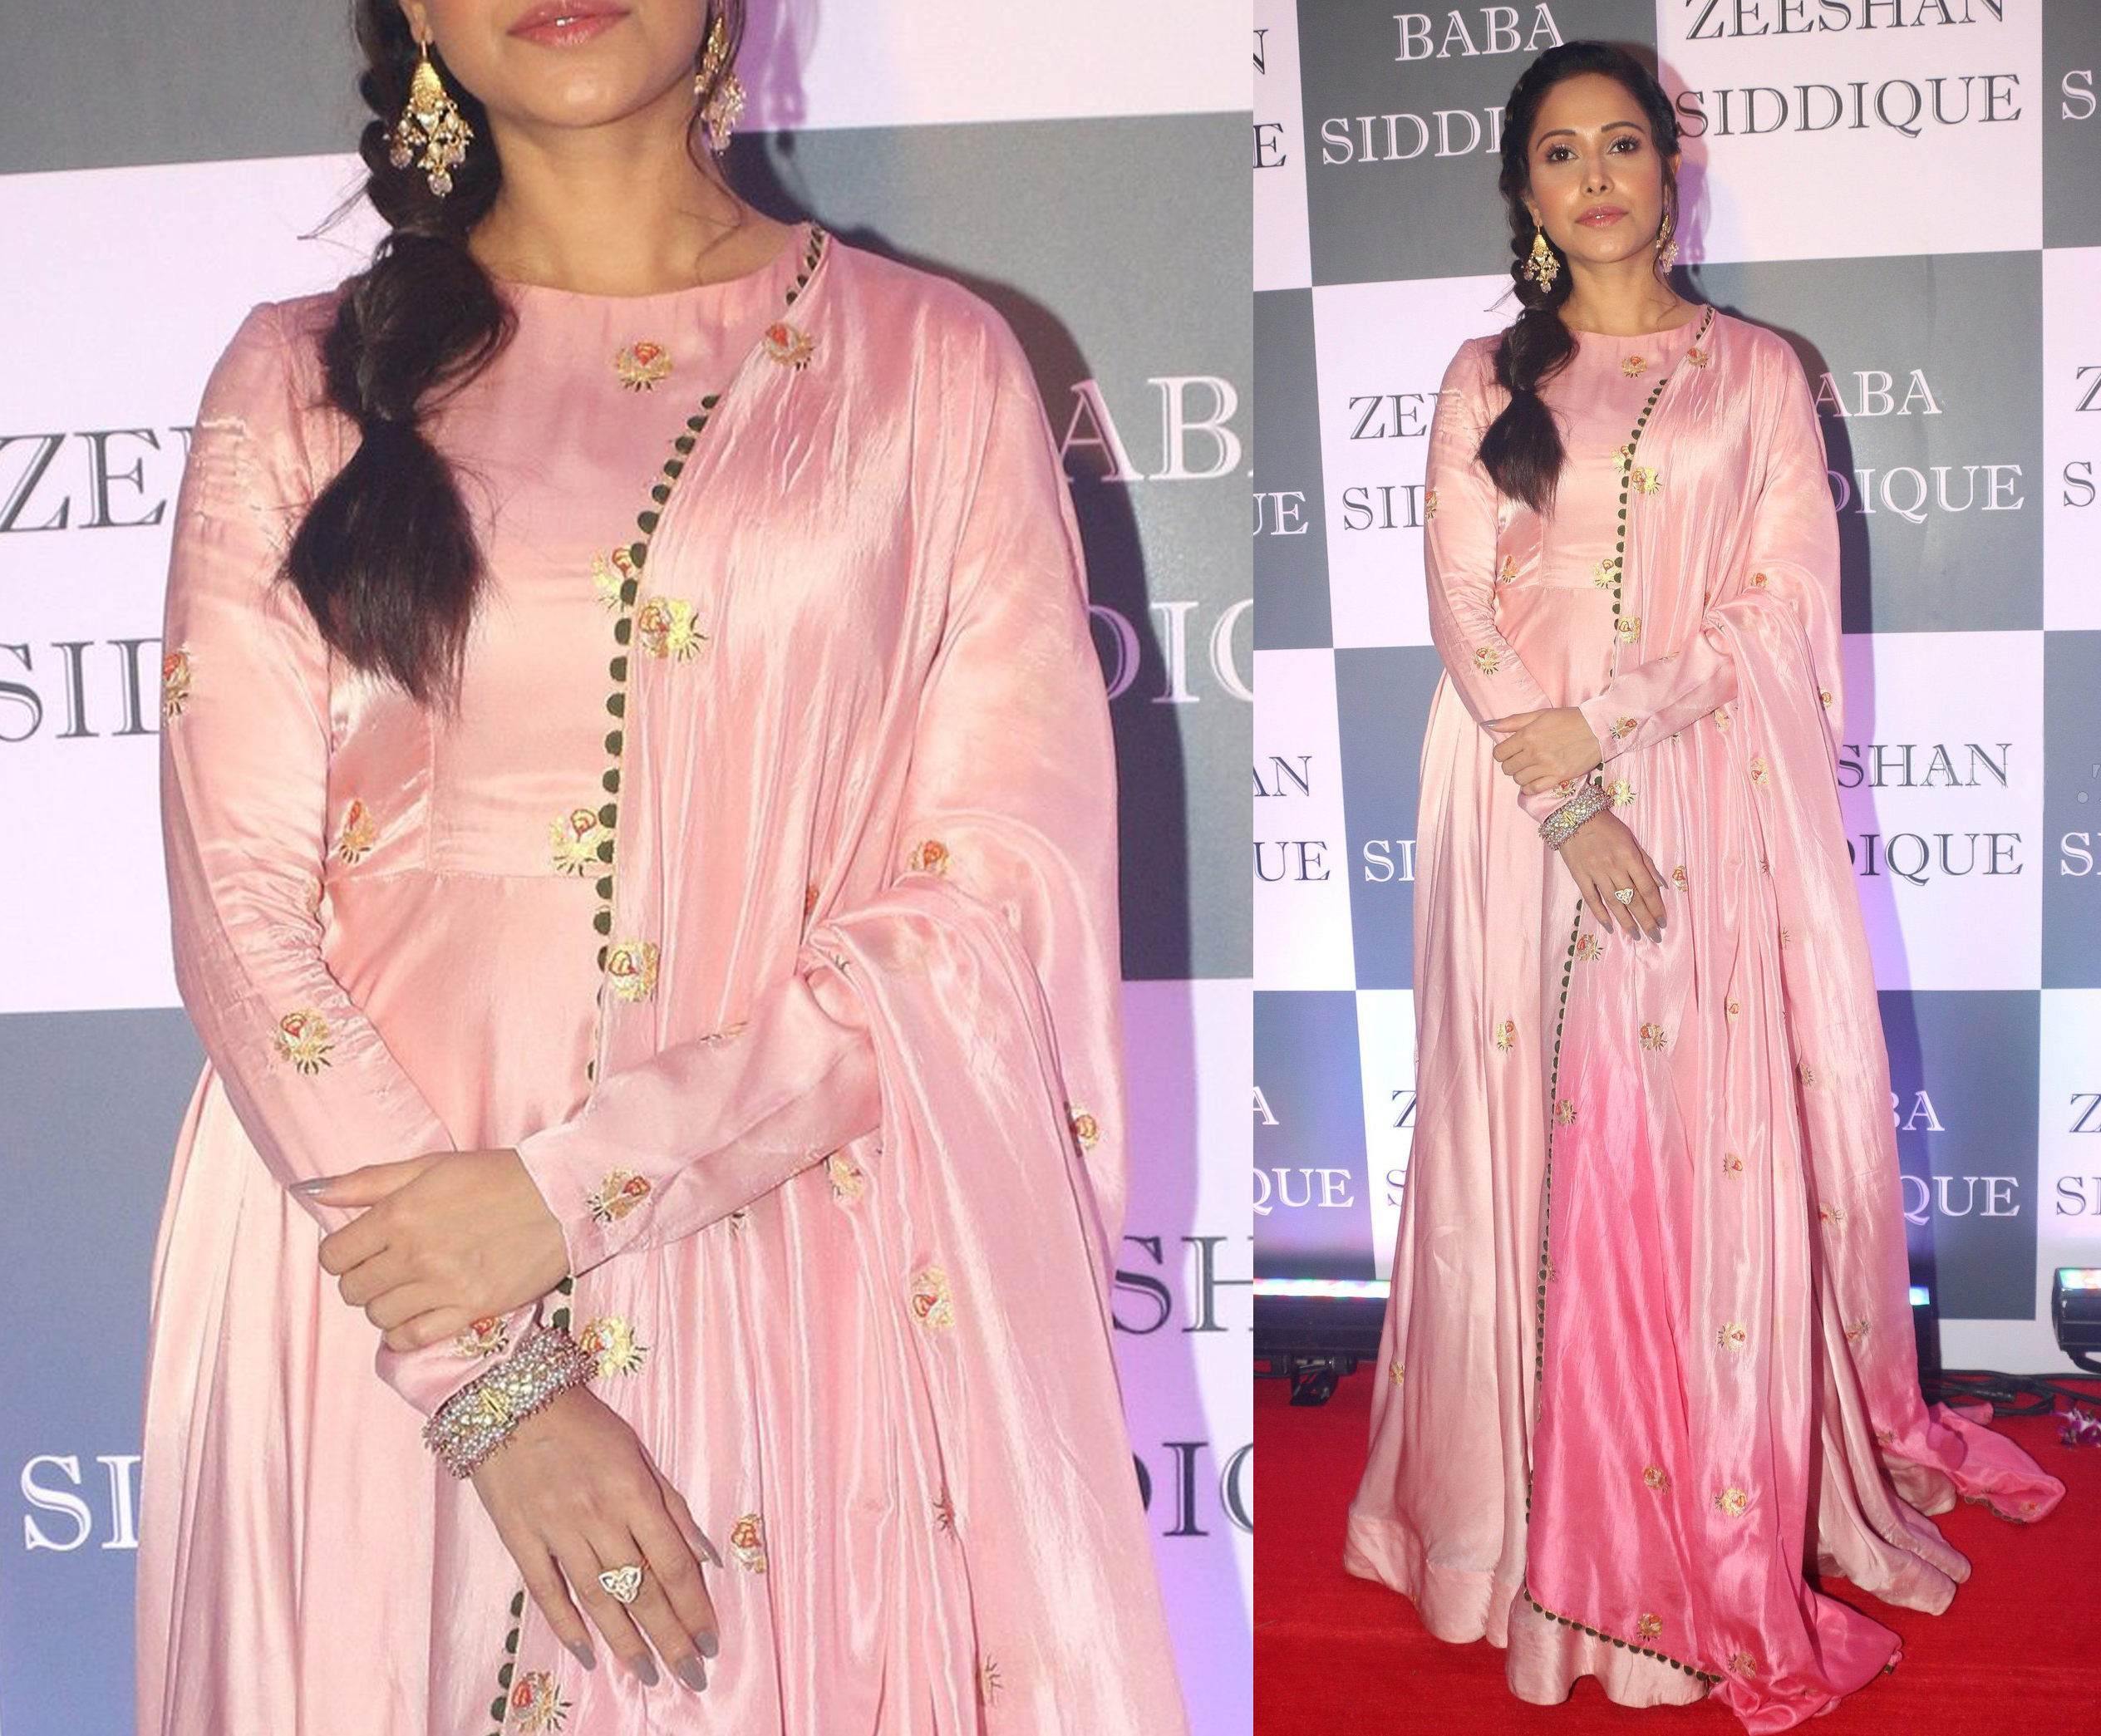 Nushrat Bharucha donned with a pink anarkali and dangling earrings